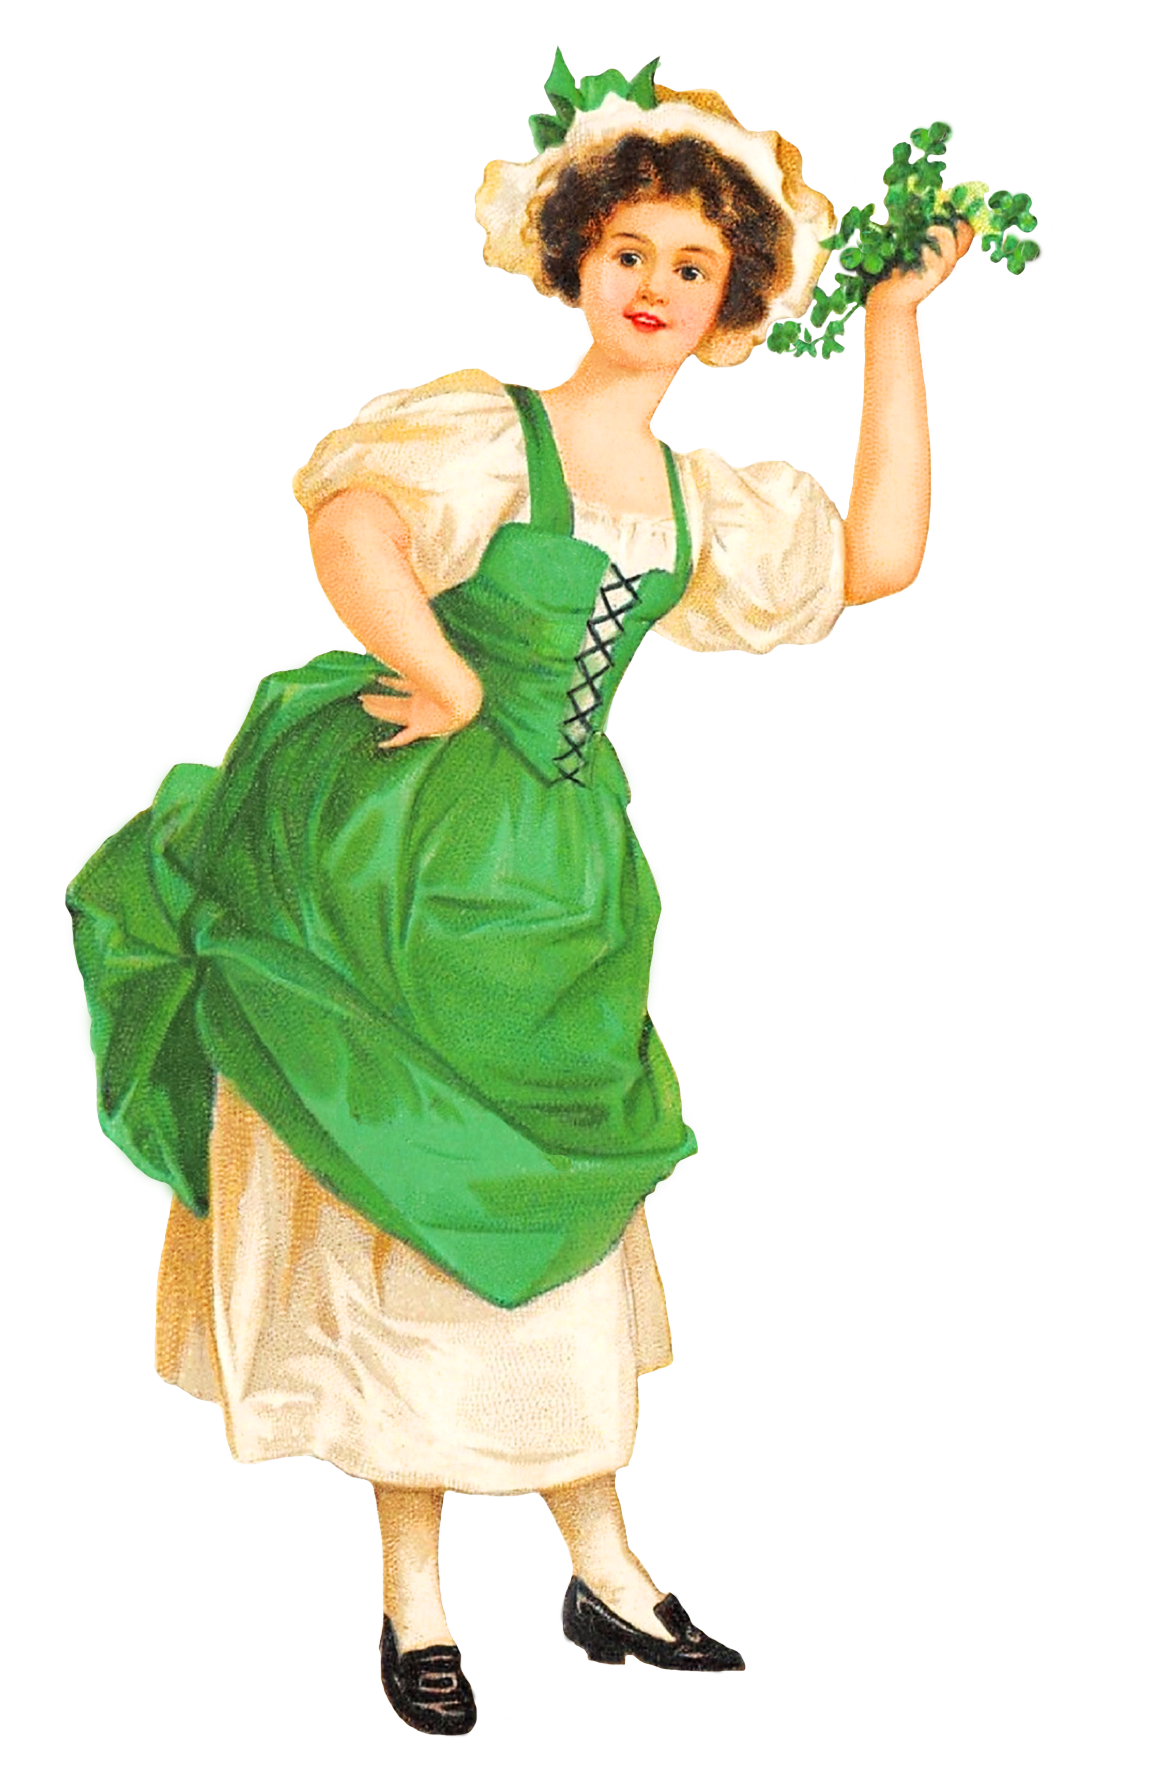 St. Patrick's day girl with clover